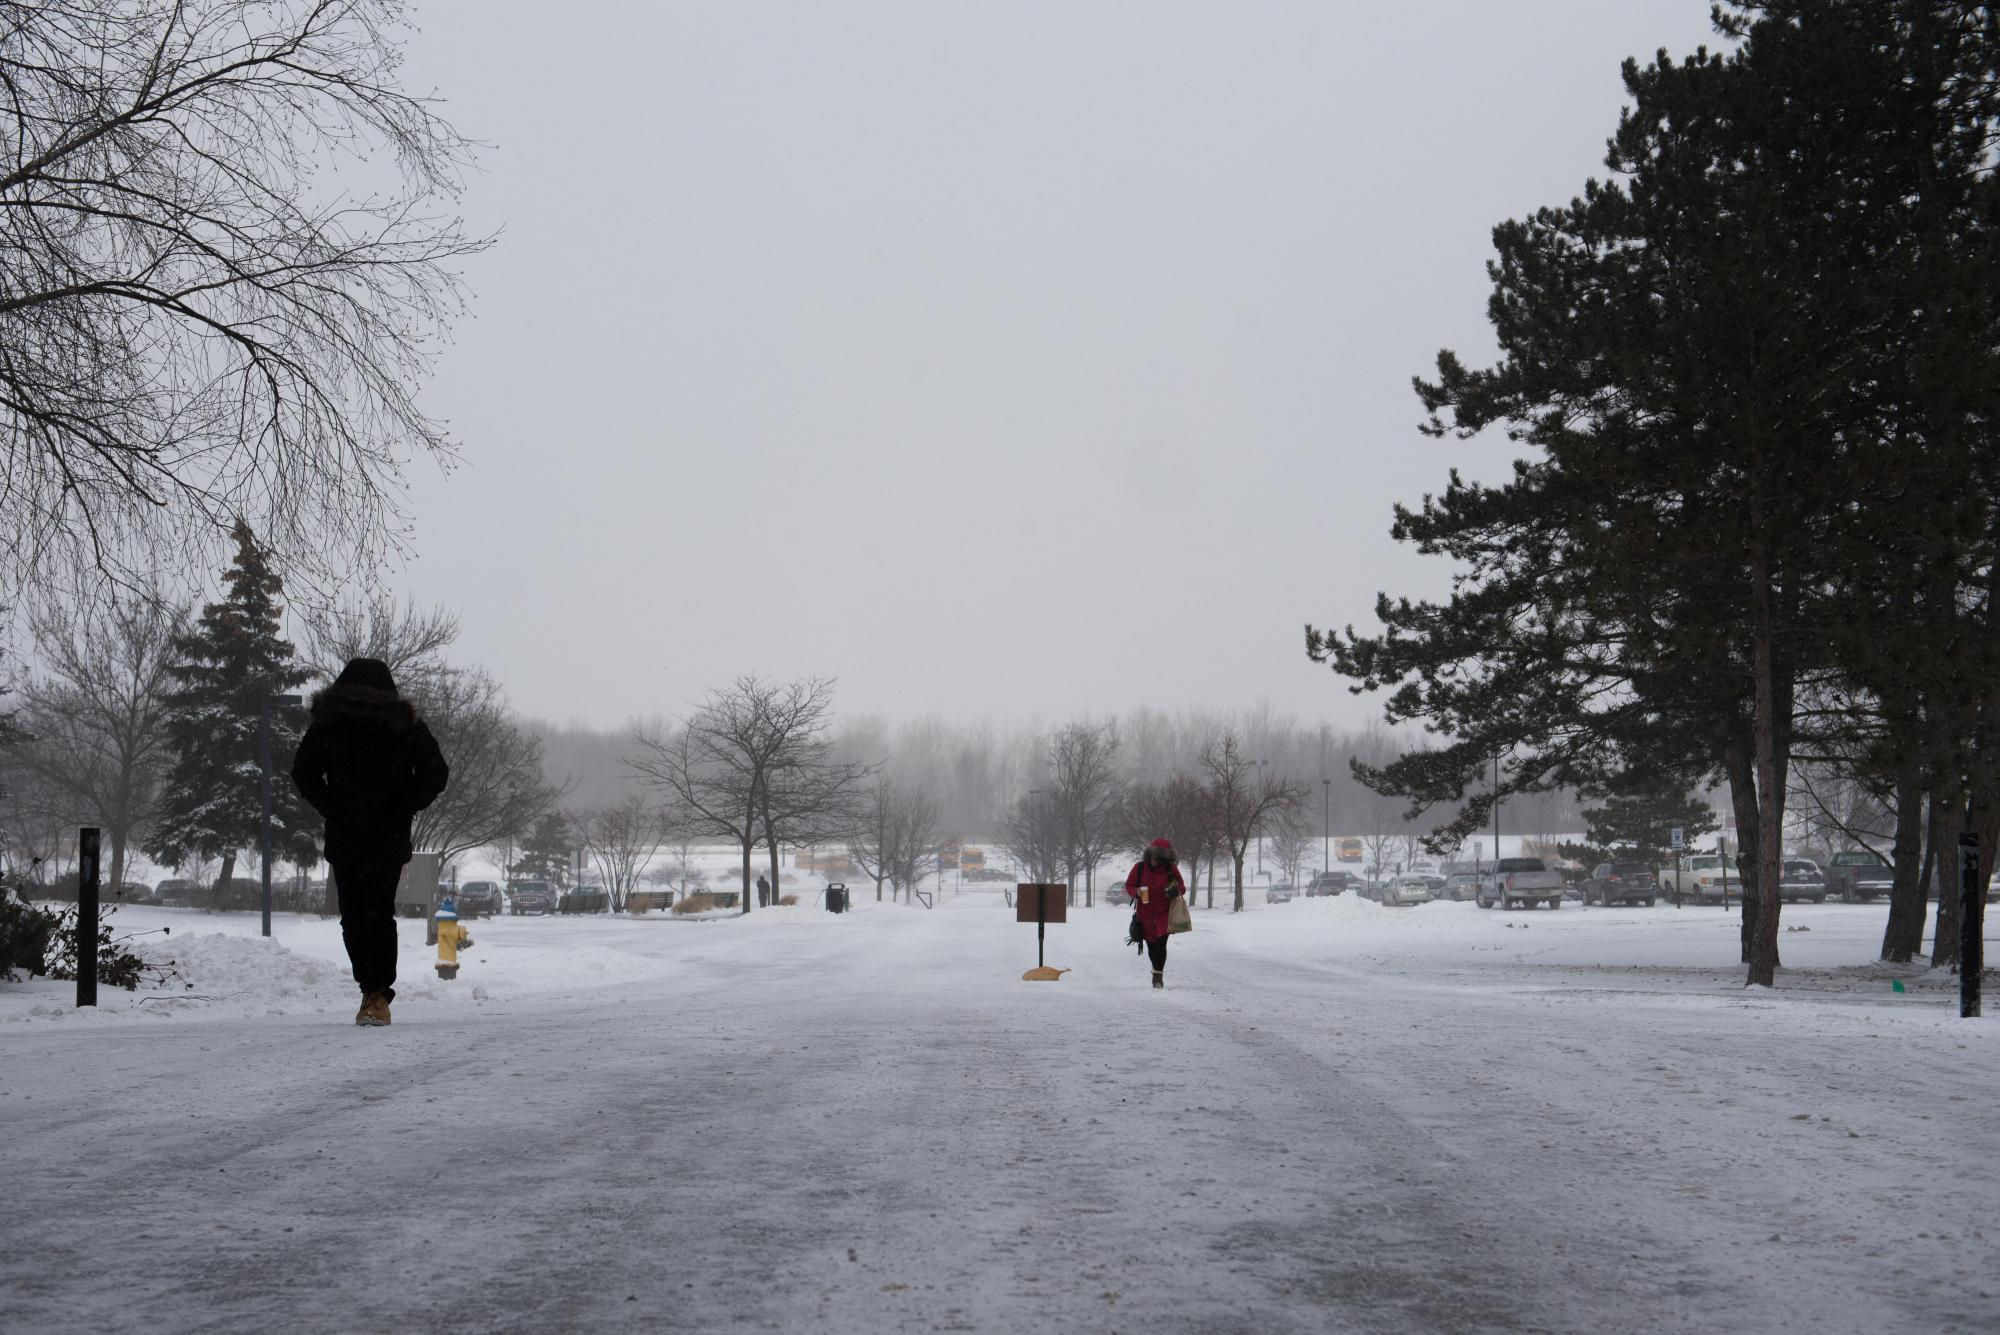 Pedestrians walk up the sidewalk on the north side of RIT's campus in front of Booth and Gannett halls on Feb. 13, 2016. Photograph by Kristen McNicholas.